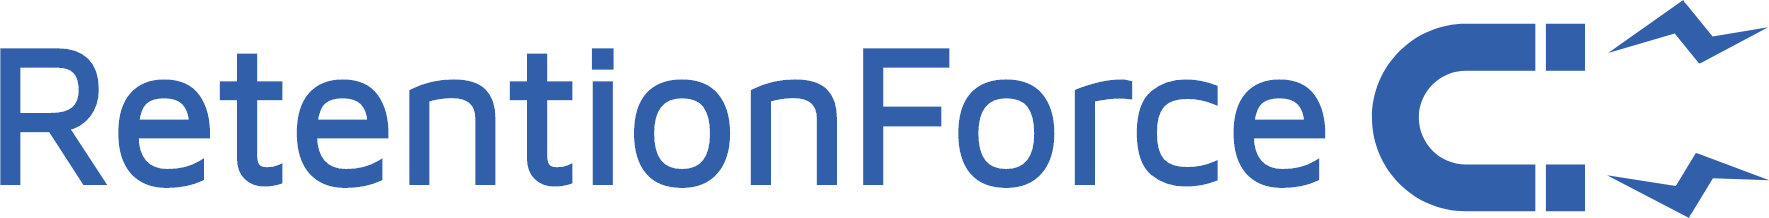 RetentionForce logo